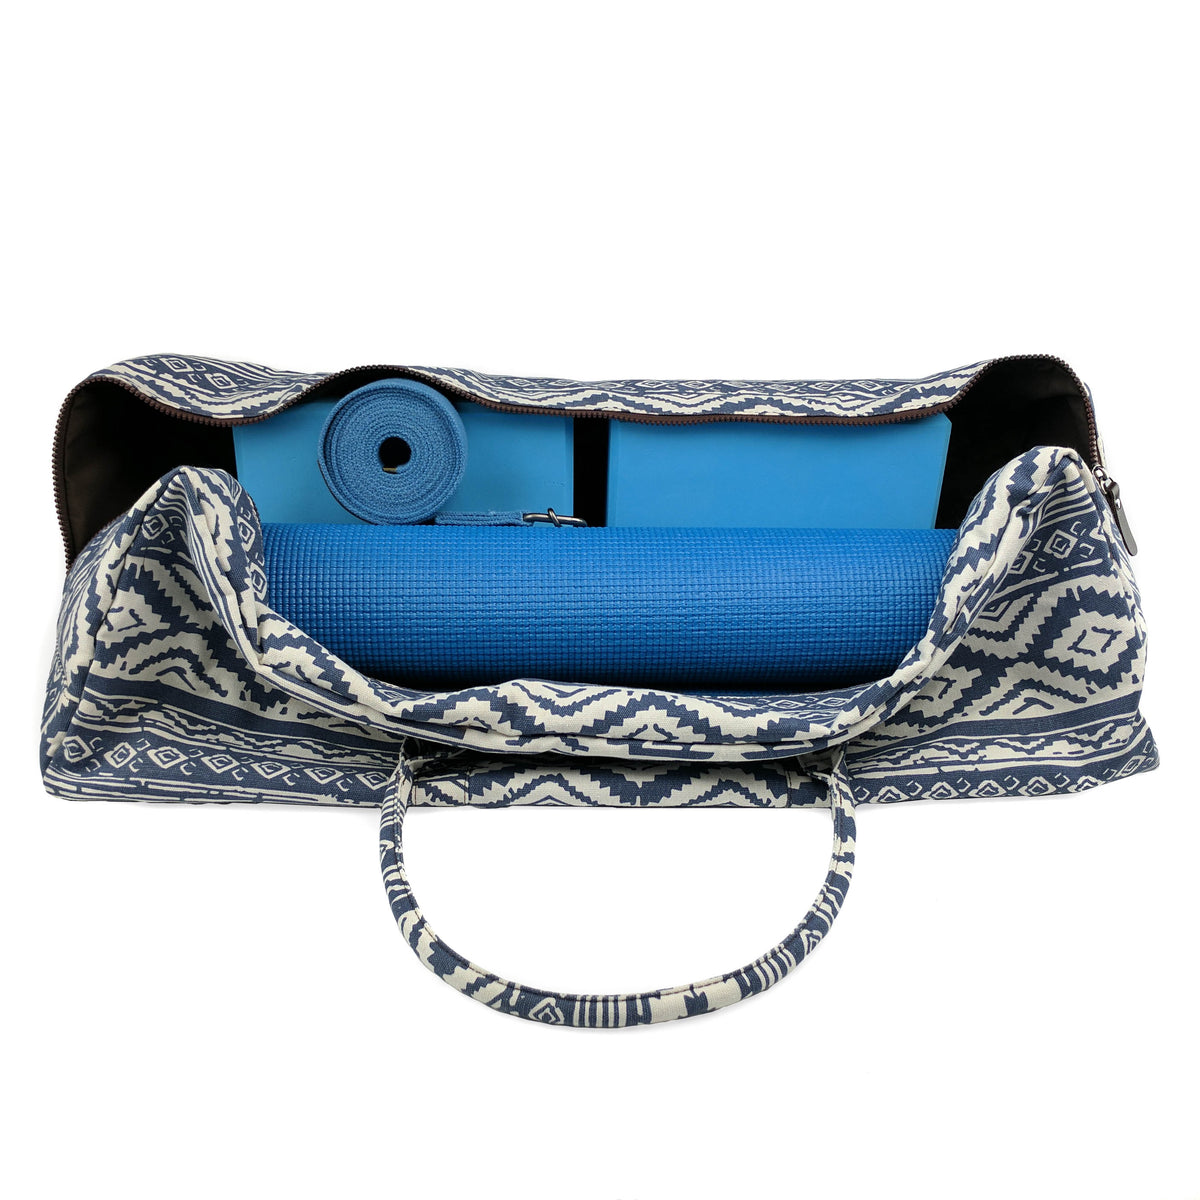 XL Yoga Mat Duffel Bag - Kindfolk Athletics